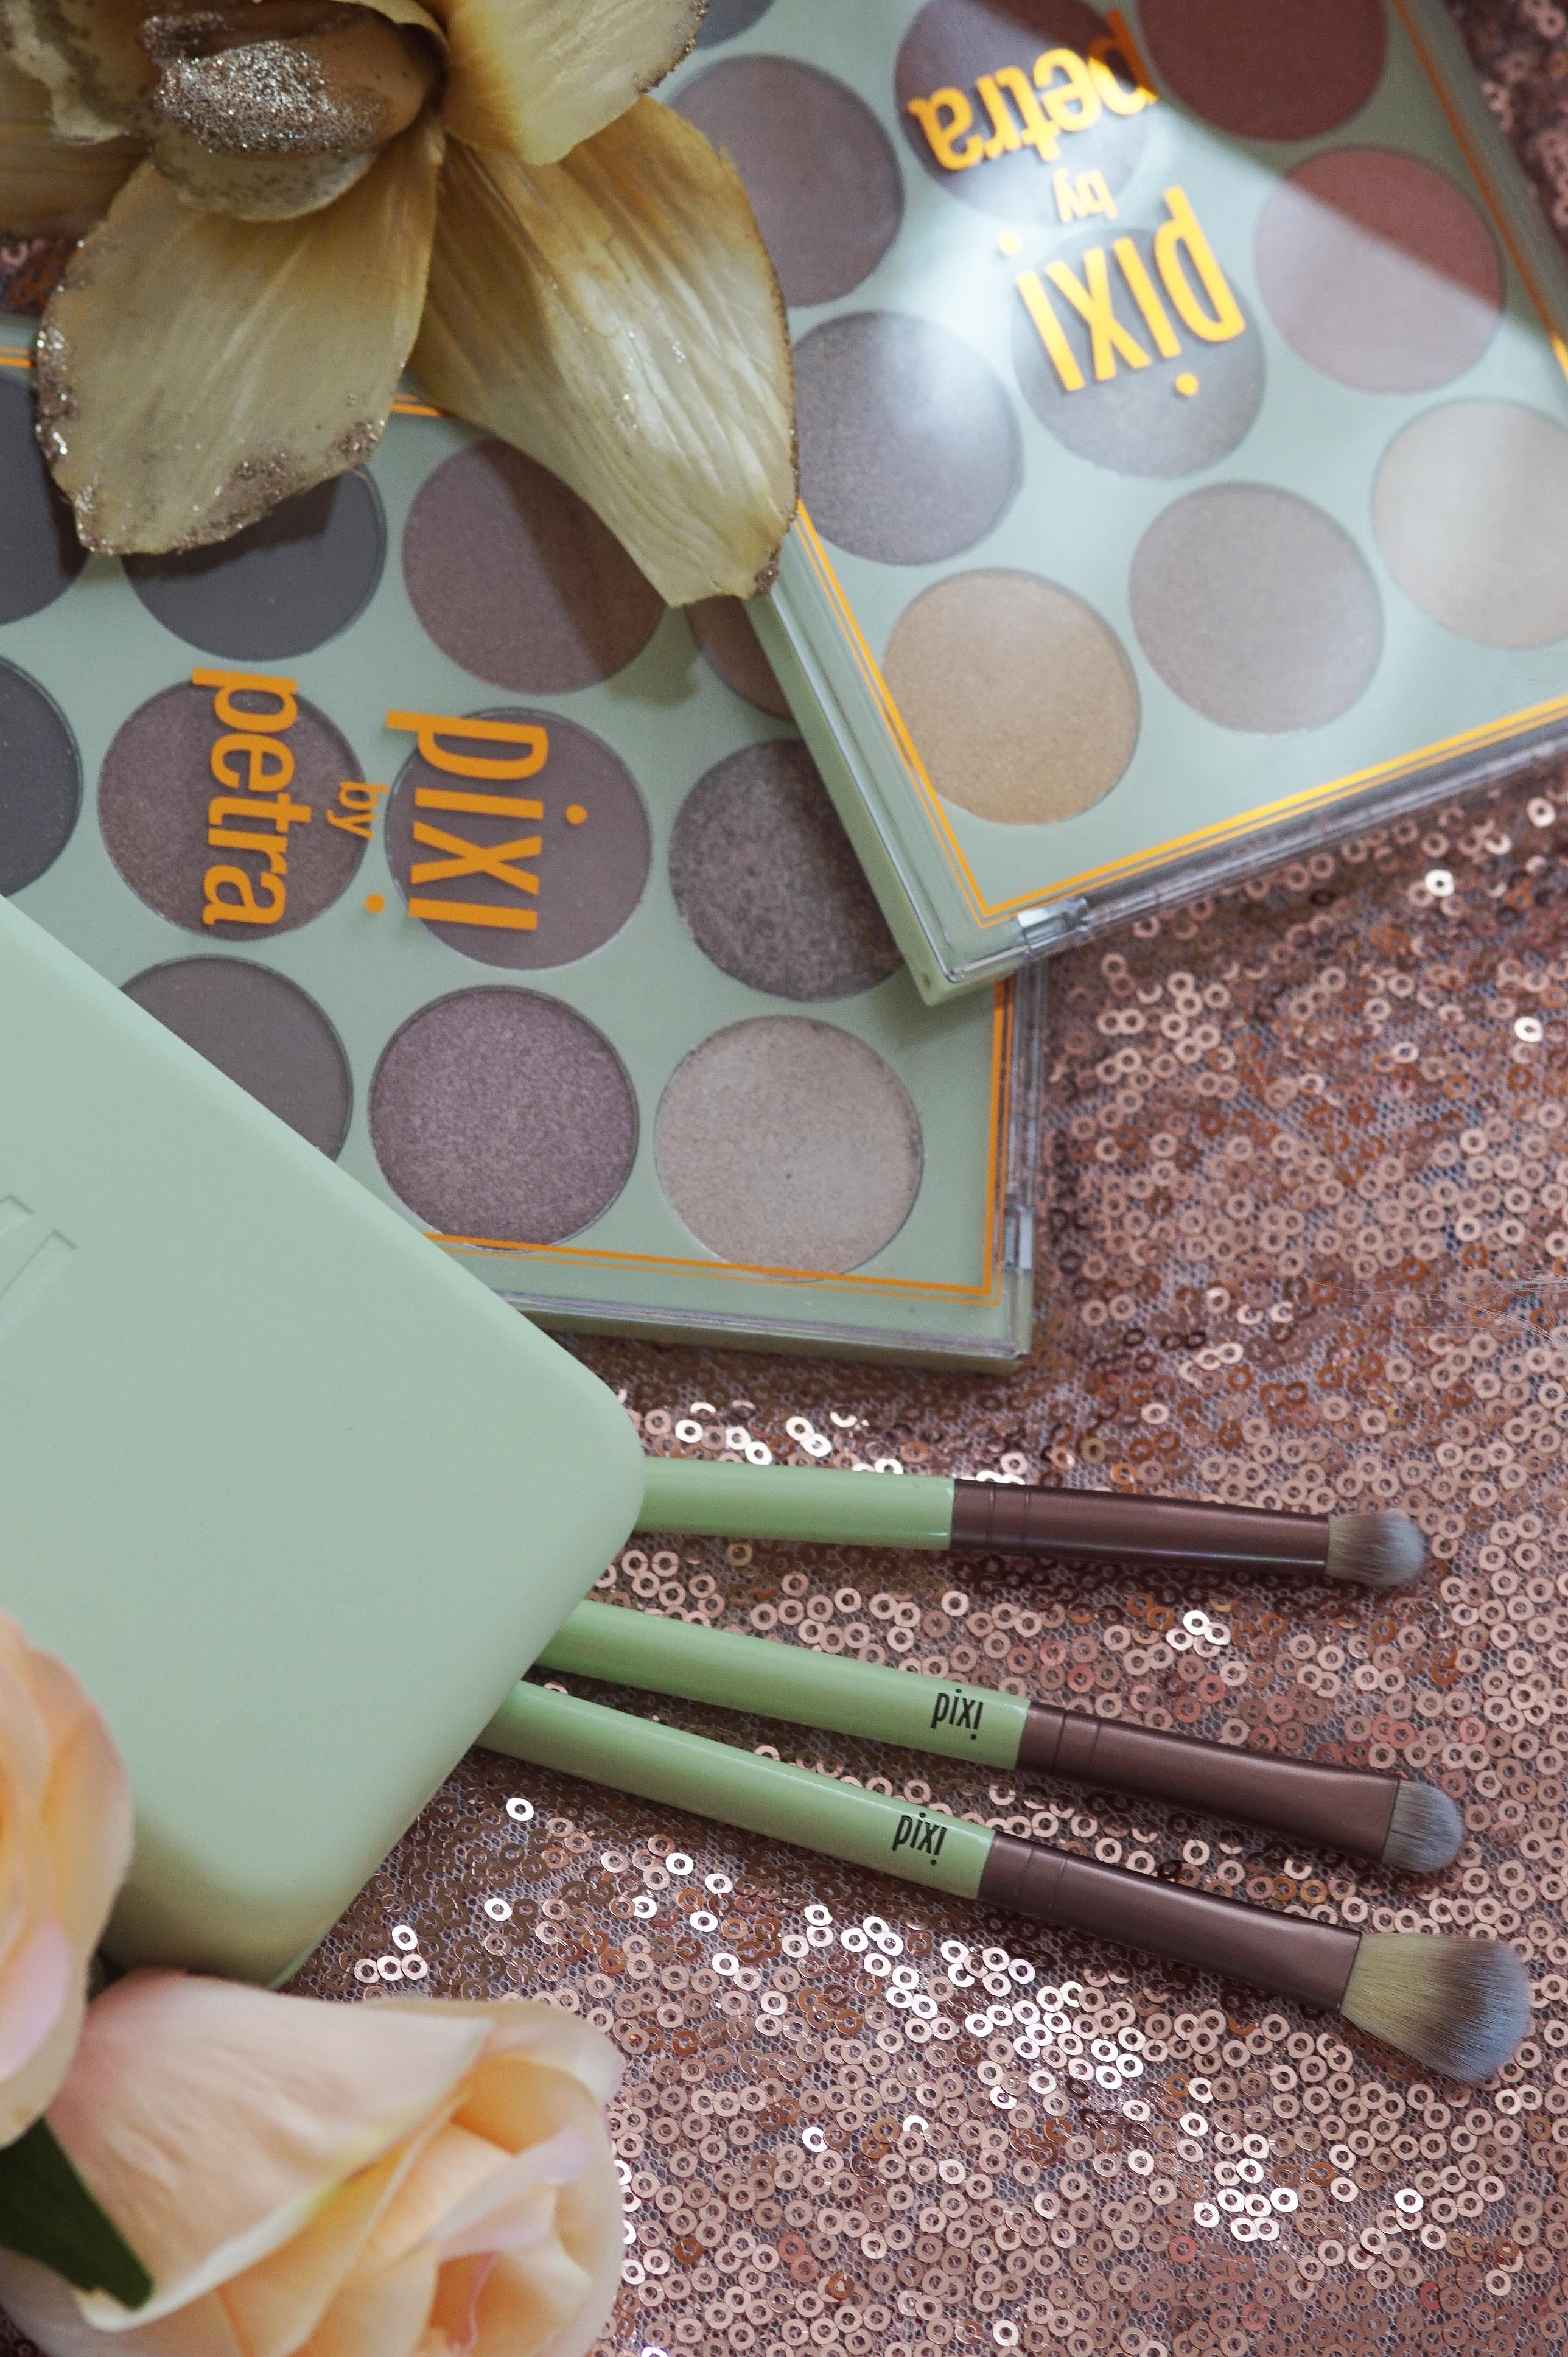 pixi beauty brushes.JPG